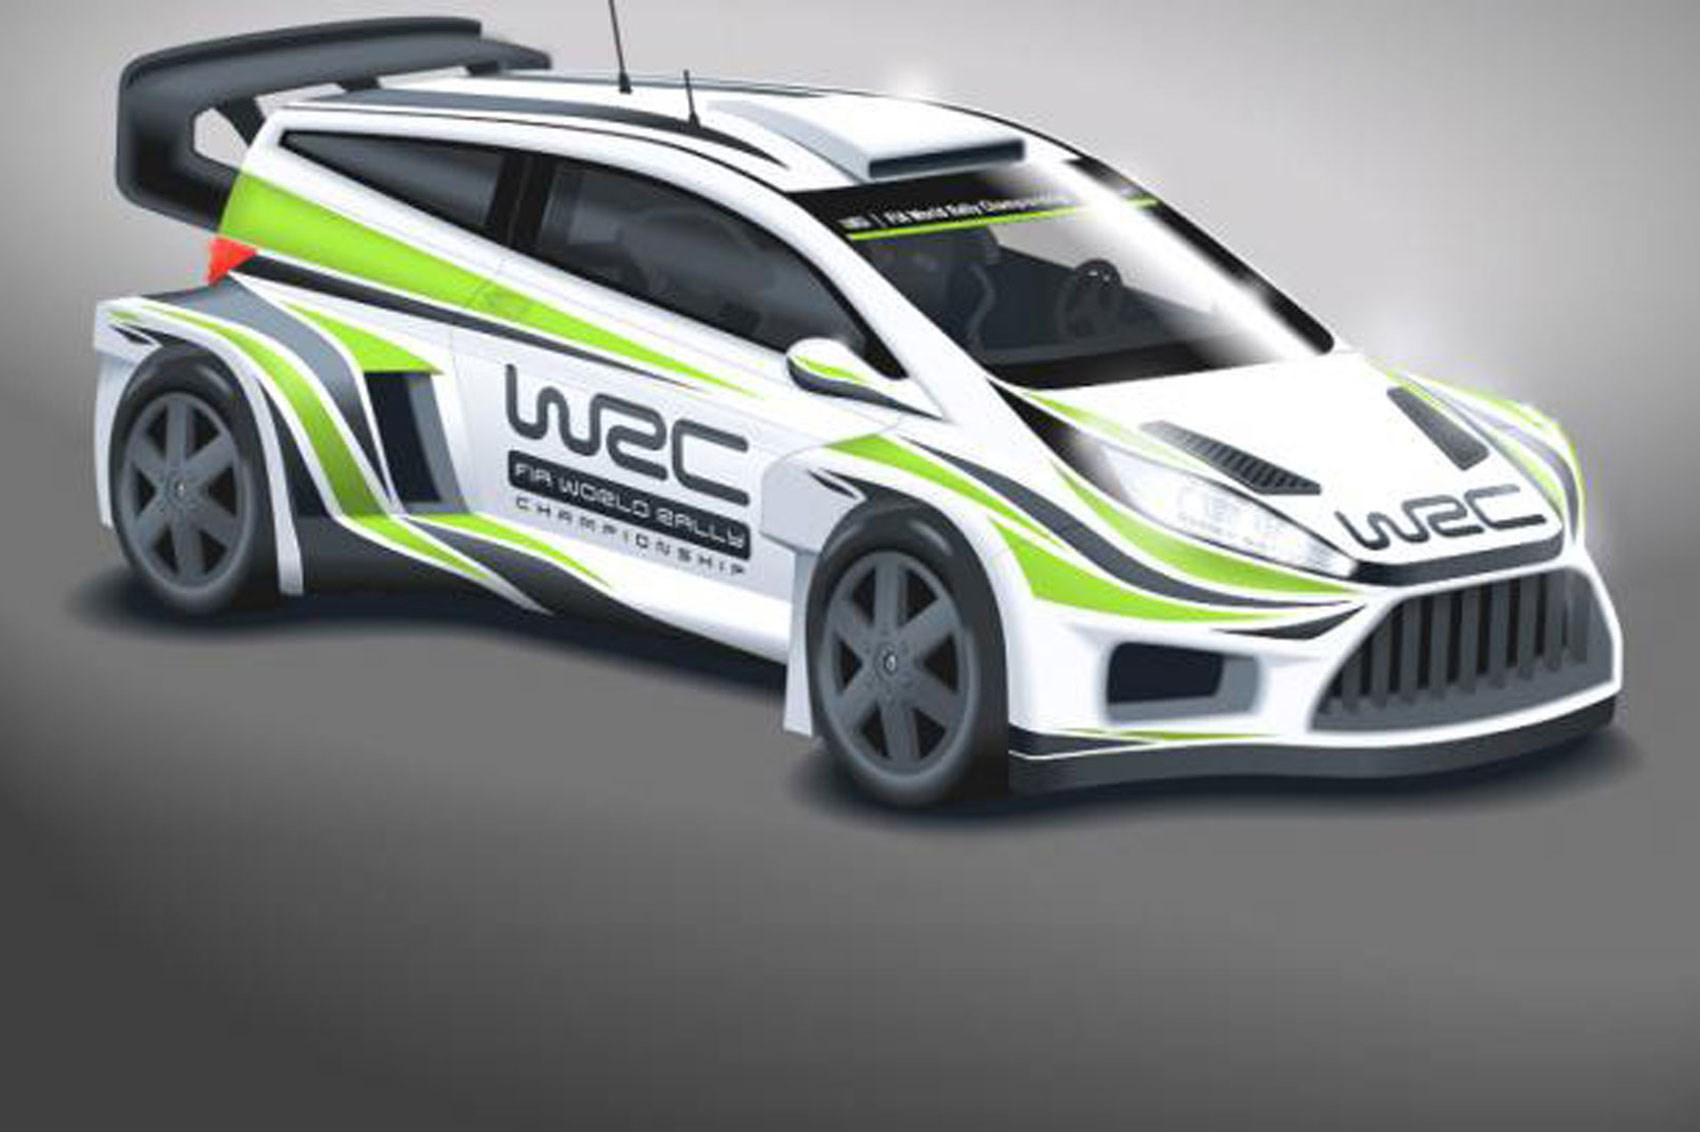 Ultrablogus  Winsome Wild New Look For Wrc Cars In  By Car Magazine With Interesting Wrc Cars Will Get Wider Bodies Bigger Wings And More Power For  With Comely Brz Subaru Interior Also  Audi A Interior In Addition  Toyota Avalon Interior And  Ford Mustang Interior As Well As Cargo Van Interior Dimensions Additionally Ford Mustang  Interior From Carmagazinecouk With Ultrablogus  Interesting Wild New Look For Wrc Cars In  By Car Magazine With Comely Wrc Cars Will Get Wider Bodies Bigger Wings And More Power For  And Winsome Brz Subaru Interior Also  Audi A Interior In Addition  Toyota Avalon Interior From Carmagazinecouk